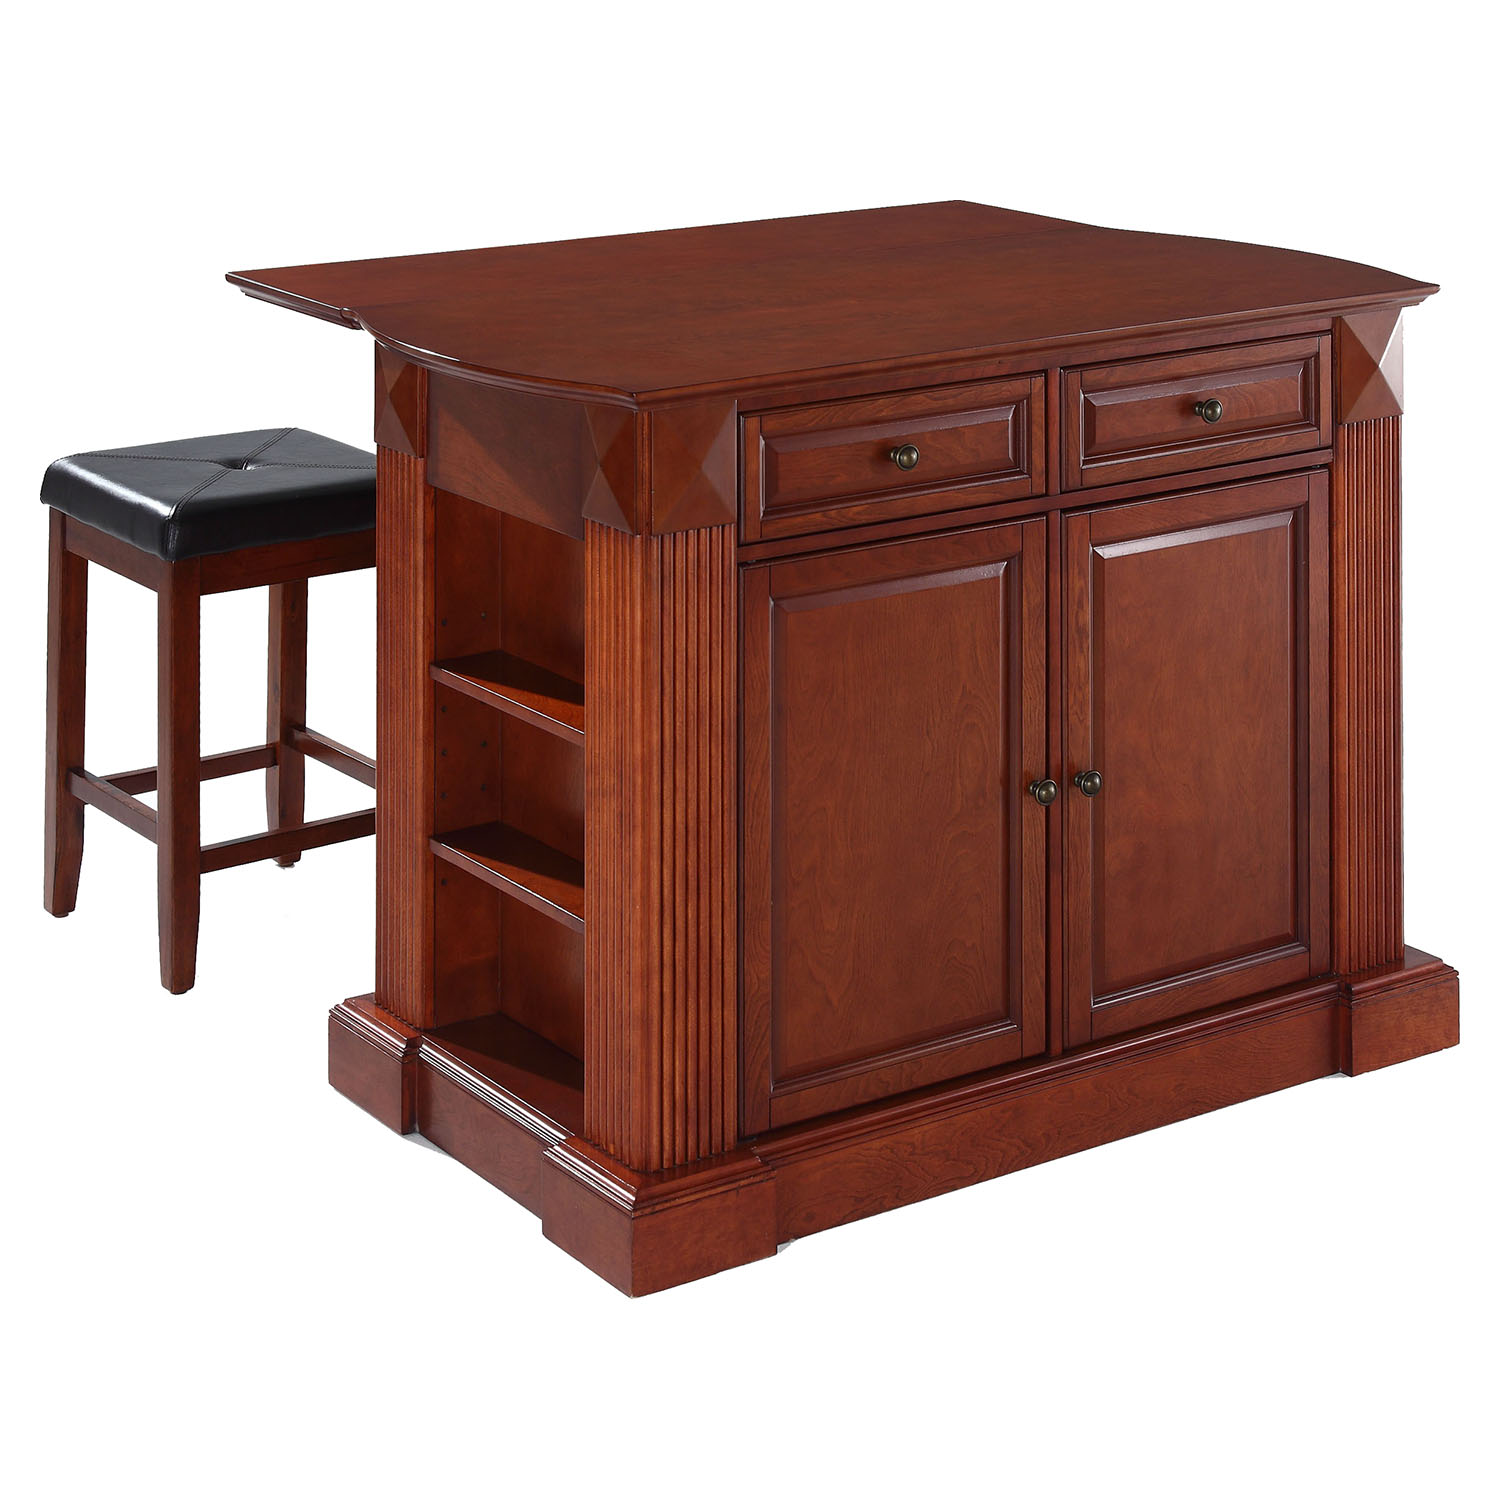 Drop Leaf Kitchen Island In Cherry With 24 Cherry Square